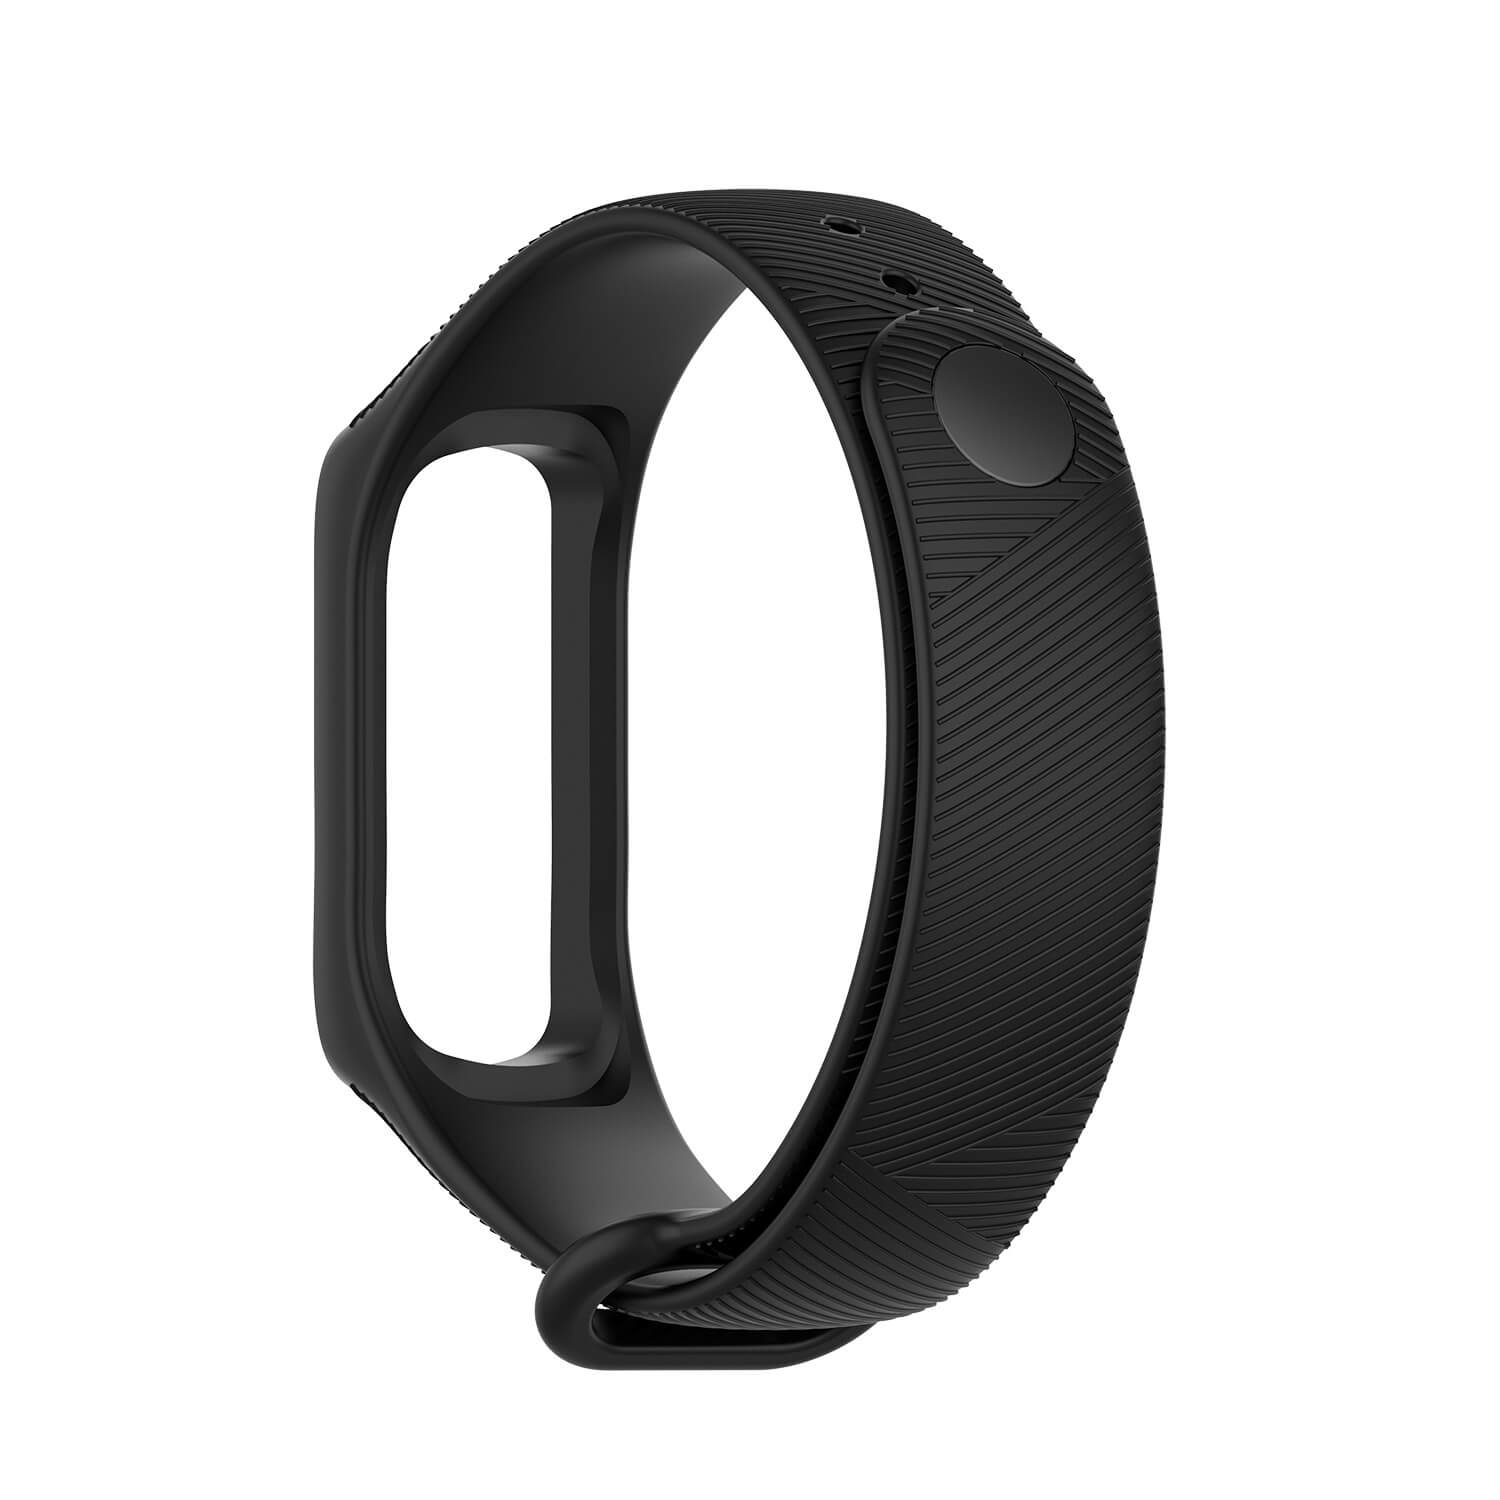 Strap-for-Samsung-Galaxy-Fit-e-smart-band-9637-black-back